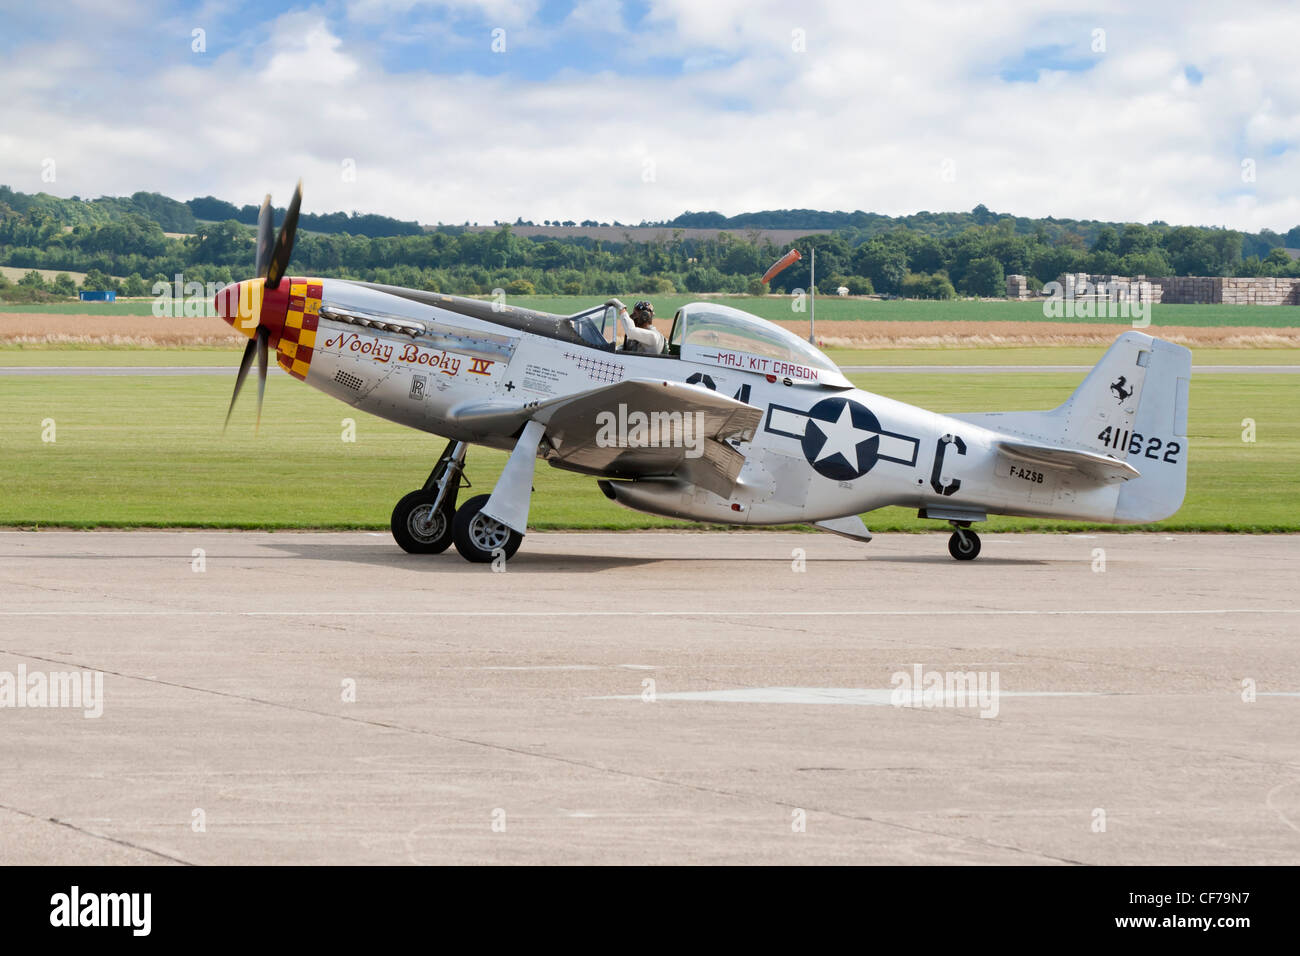 P-51D  mustang 'Nooky Booky iv' - Stock Image